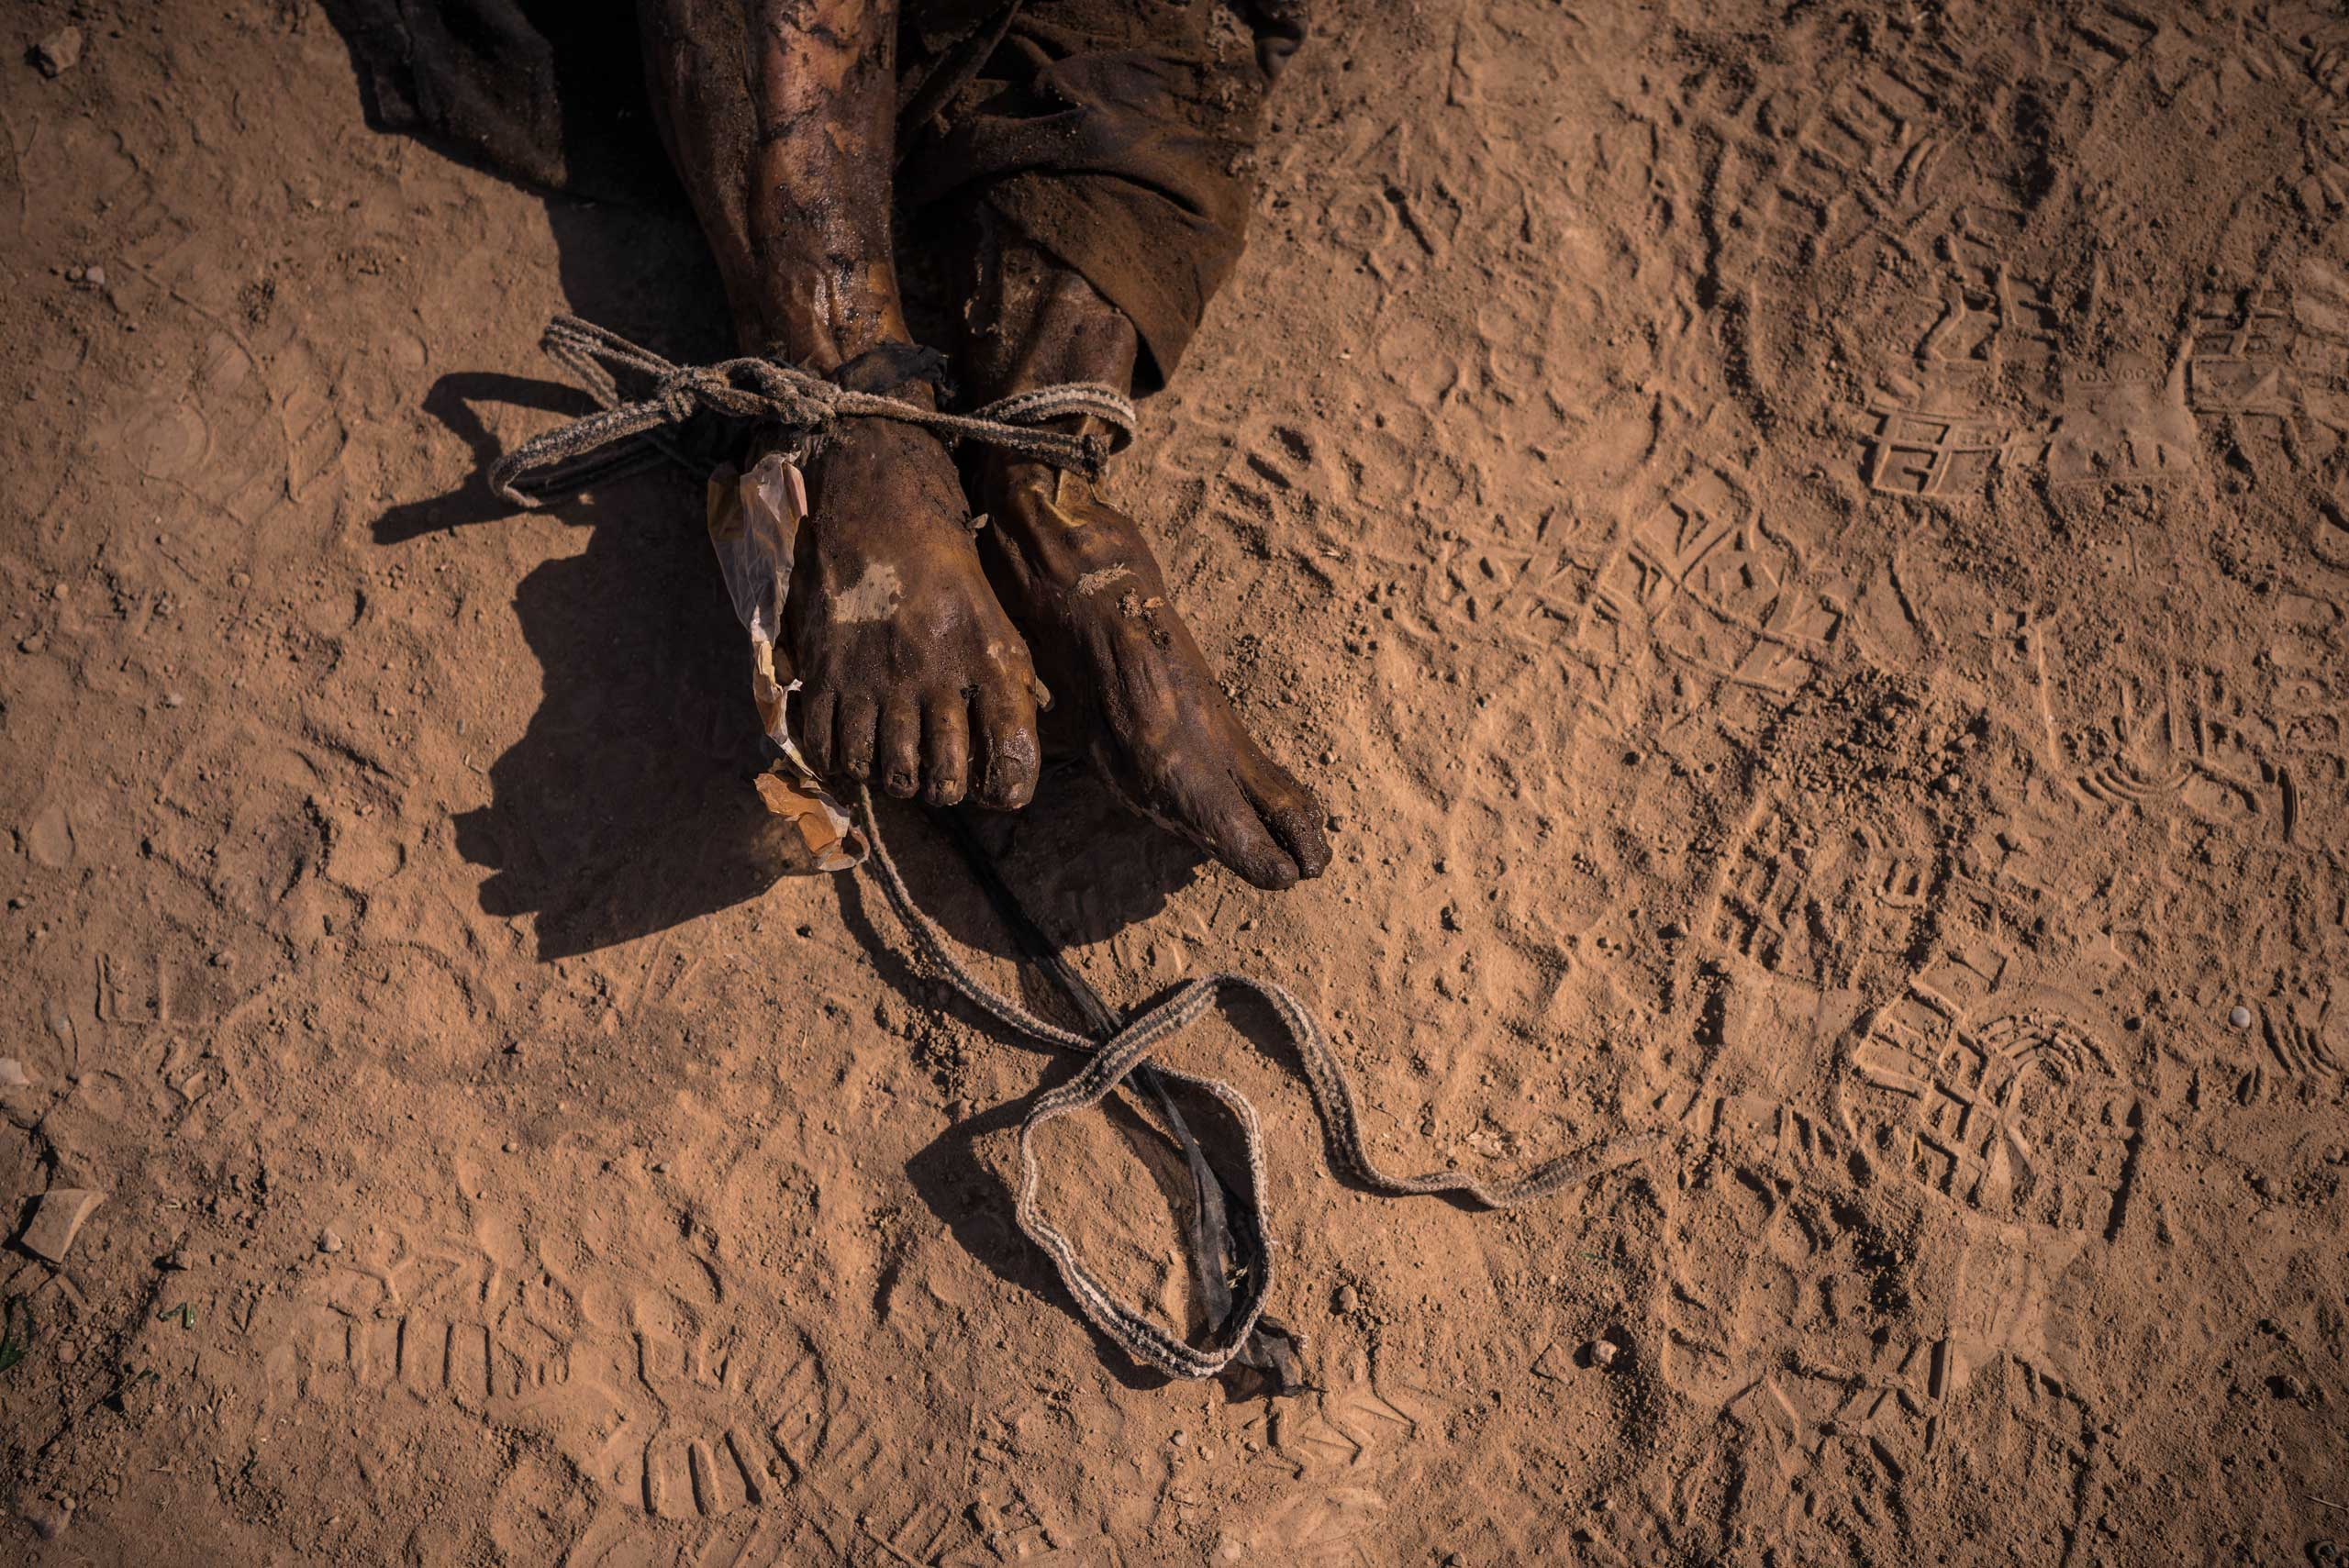 A tied, decomposed body is seen at the site of a mass grave that was discovered on the outskirts of Hamam al-Alil, Iraq on Nov. 12, 2016.